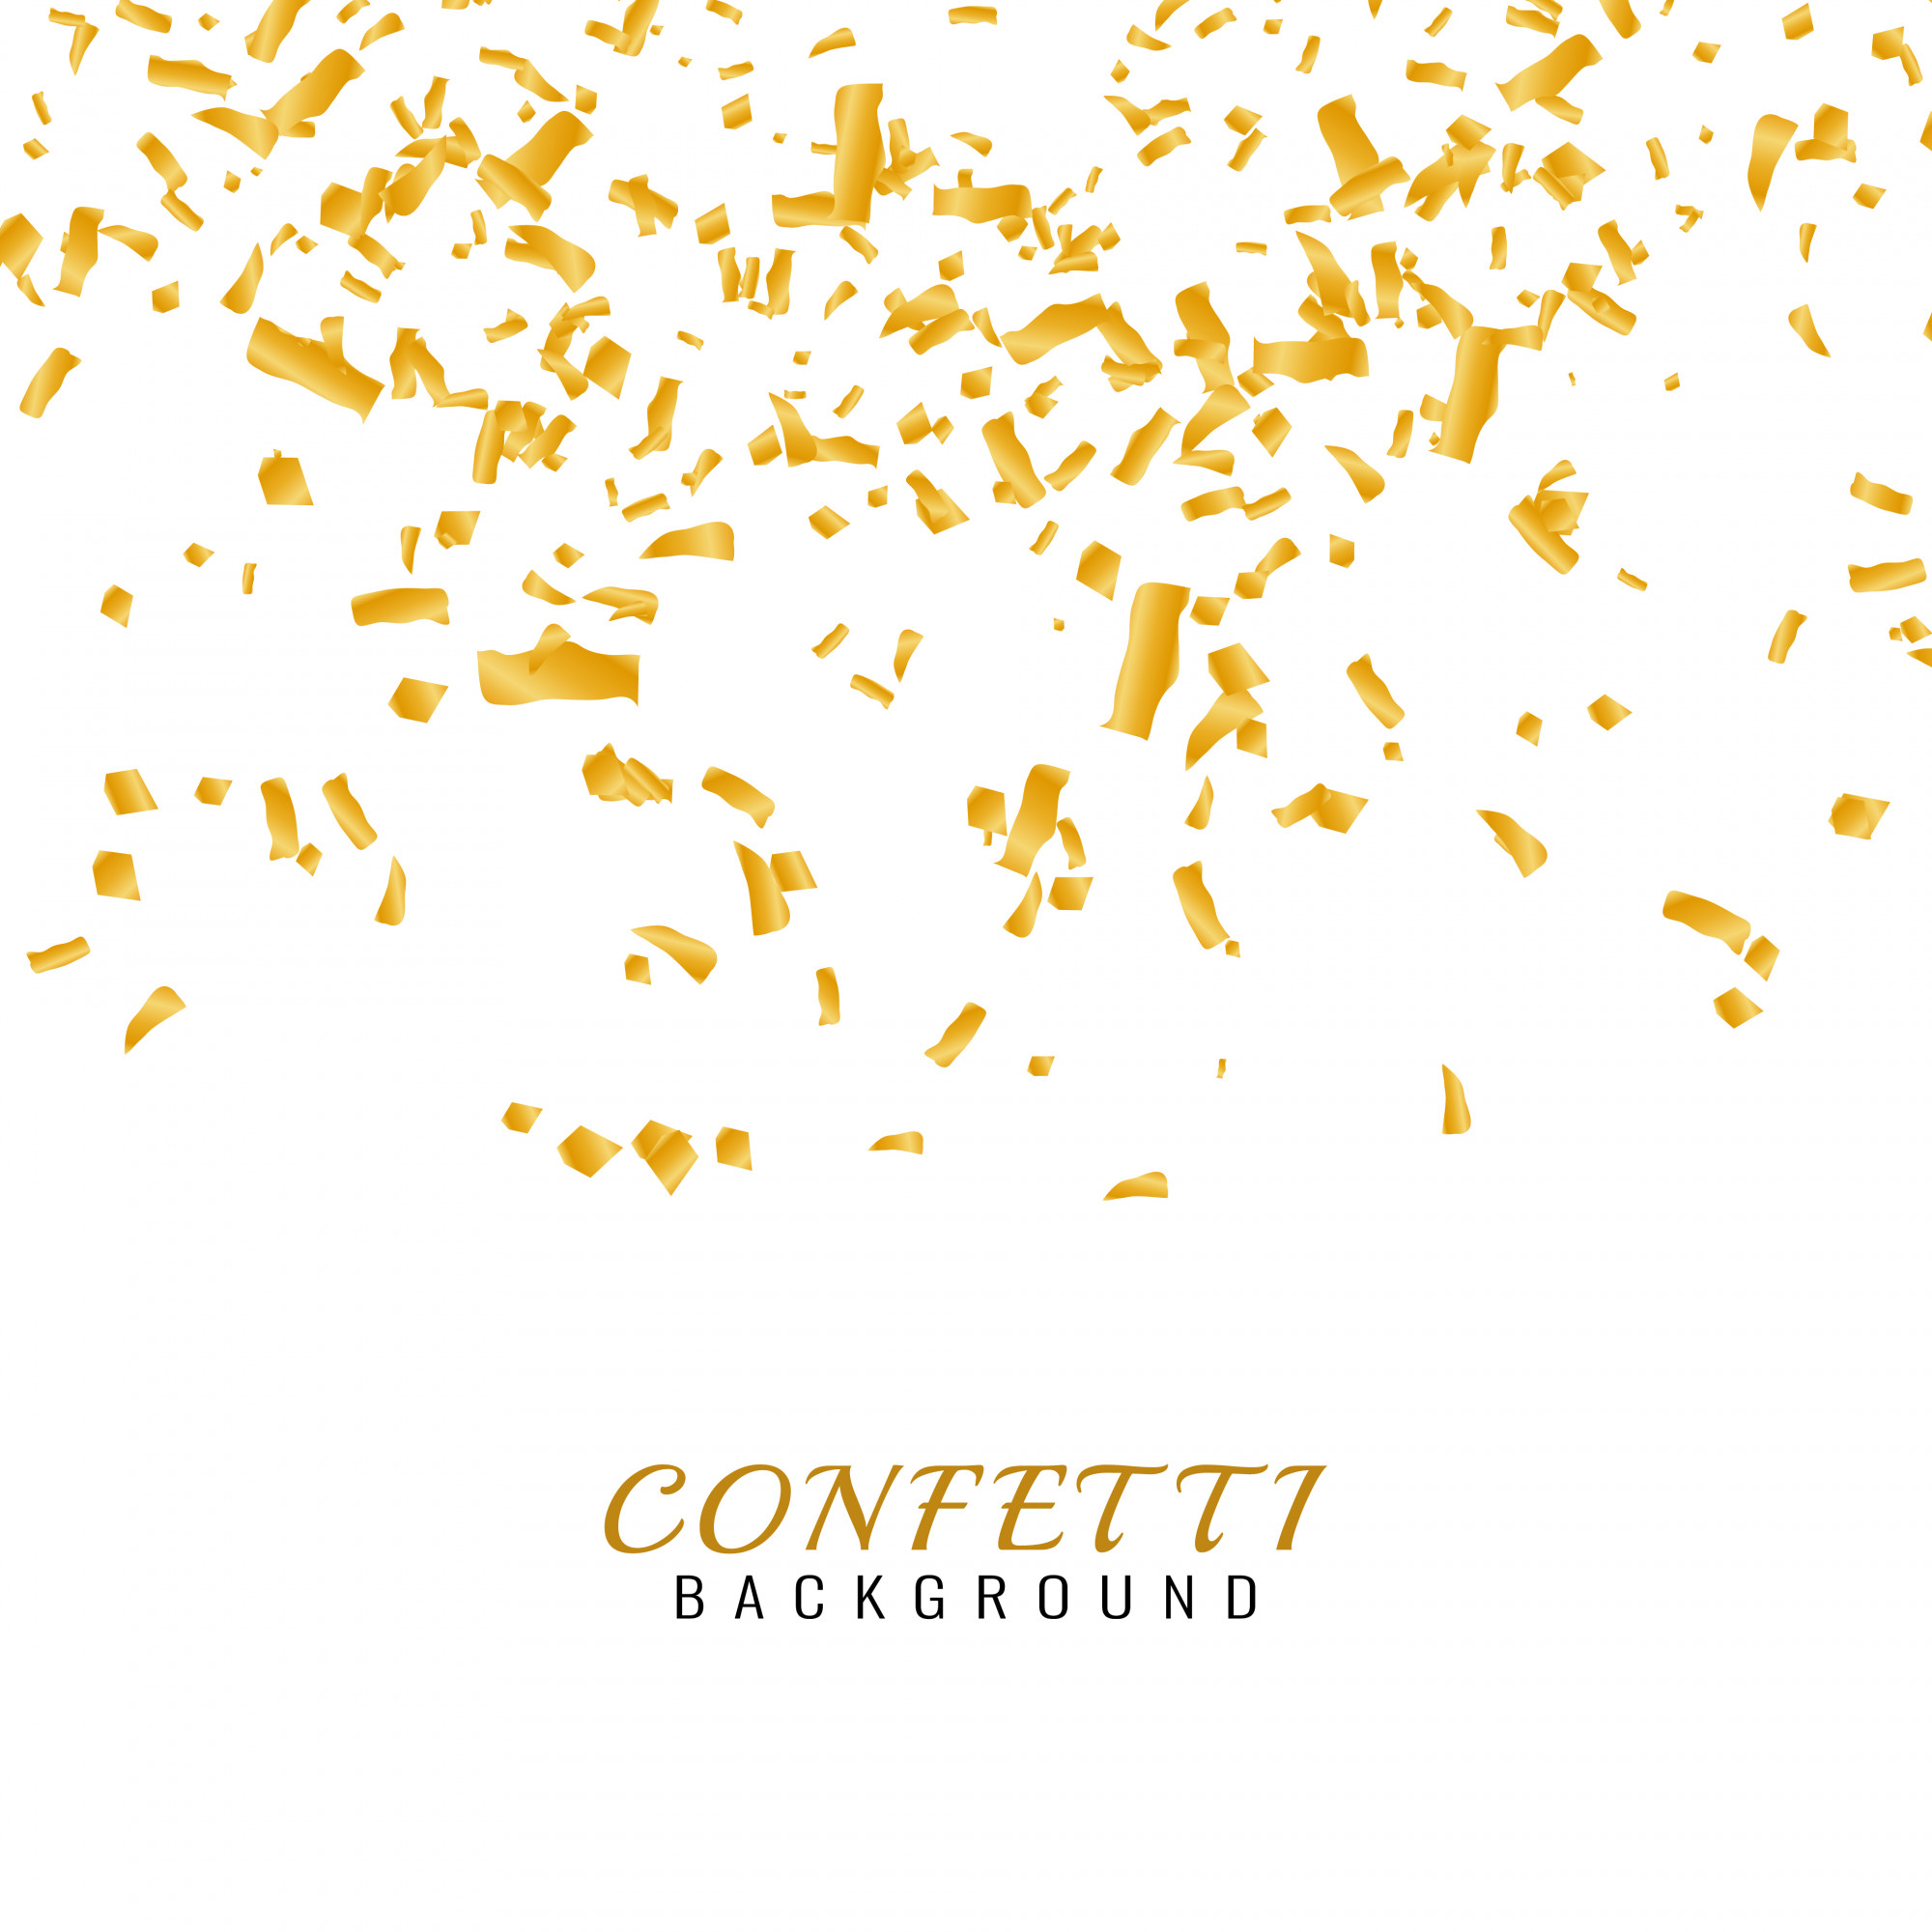 Abstarct golden confetti background